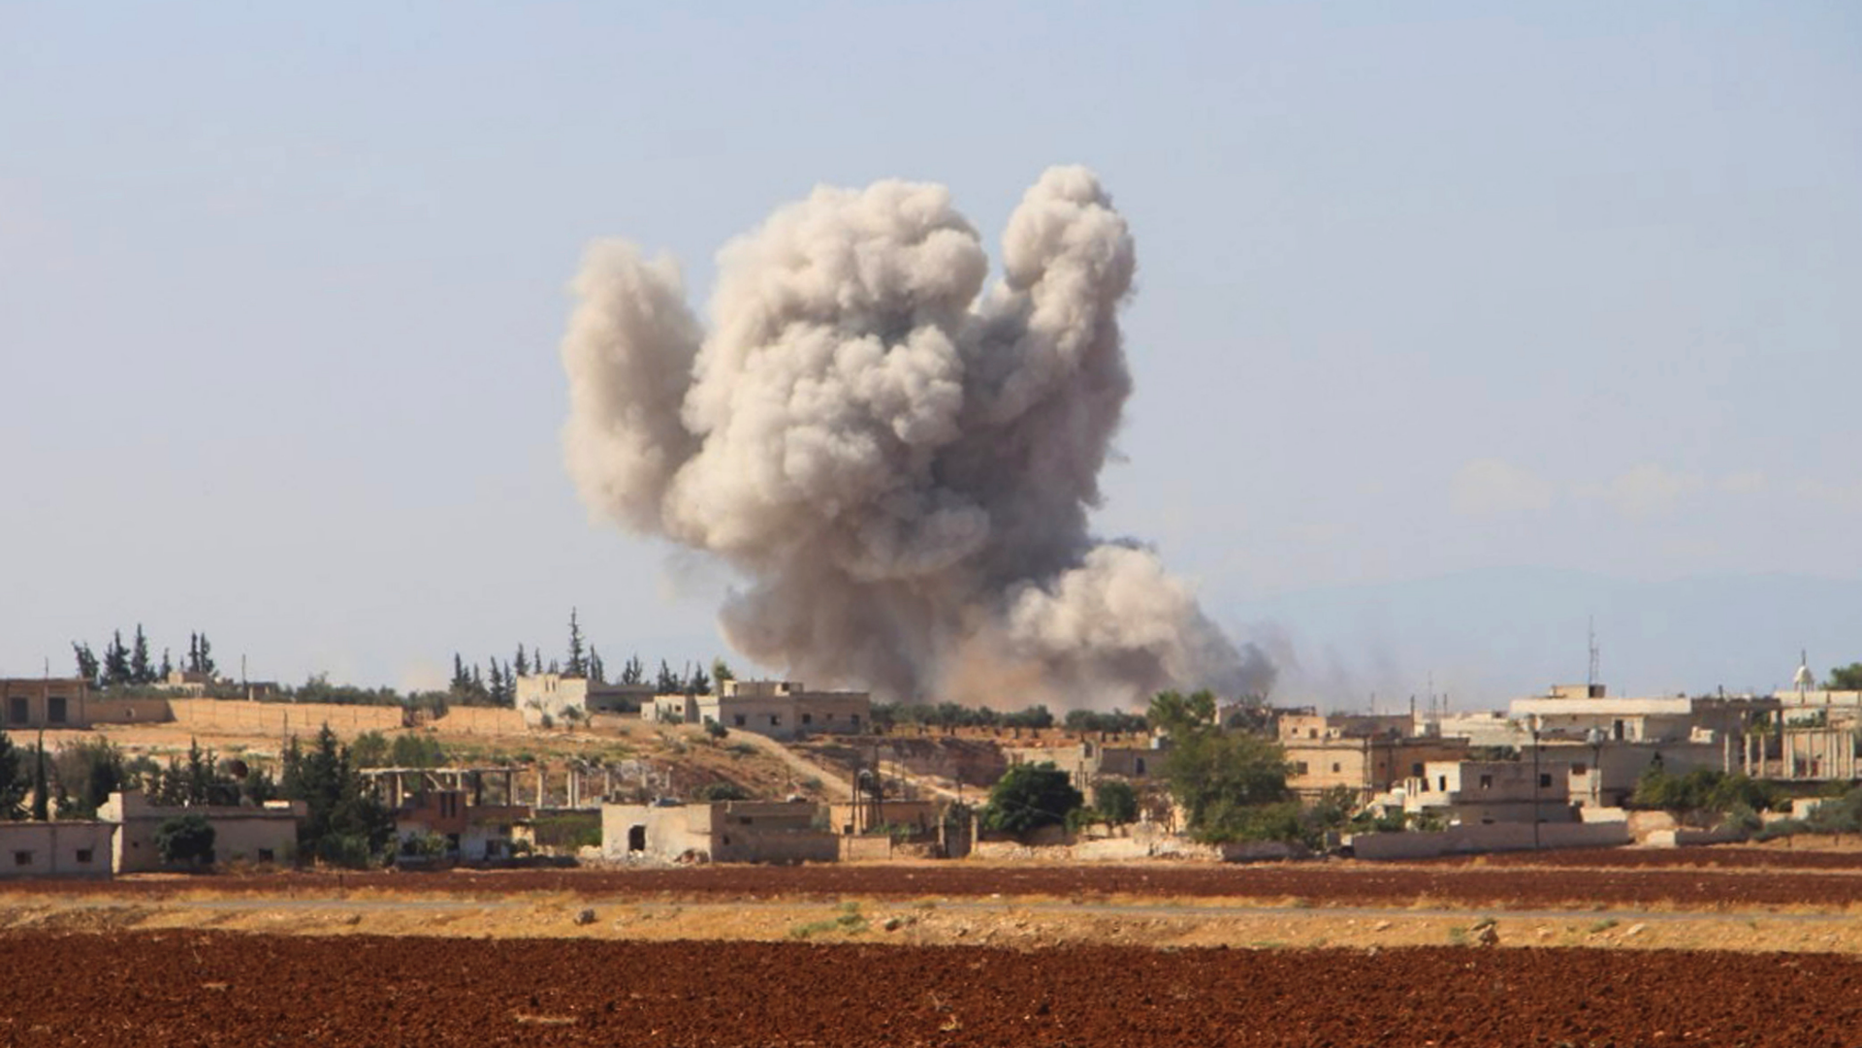 FILE - This file photo released on Monday, Sept 10, 2018 by the Syrian Civil Defense group known as the White Helmets, shows smoke rising from a Syrian government airstrike, in Hobeit village, near Idlib, Syria. As the decisive battle for Idlib looms, a motley crew of tens of thousands of Syrian opposition fighters, including some of the world's most radical, are digging their heels_ looking for ways to salvage what is possible of an armed rebellion that at one point in the seven-year conflict controlled more than half of the country. (Syrian Civil Defense White Helmets via AP, File)